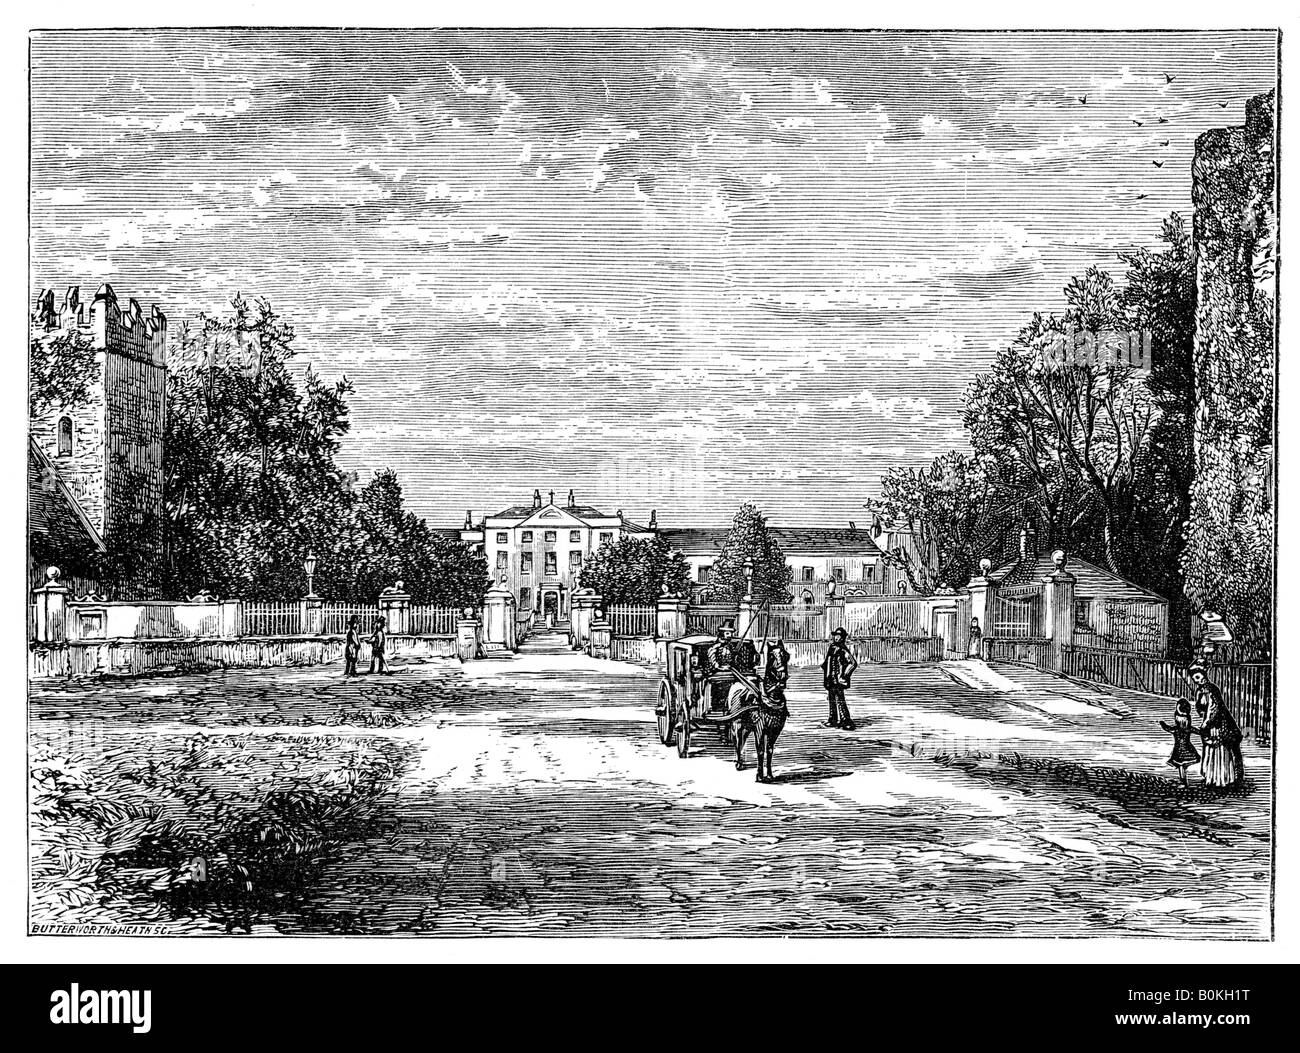 Maynooth College, County Kildare, Ireland, 1900. Artist: Unknown - Stock Image